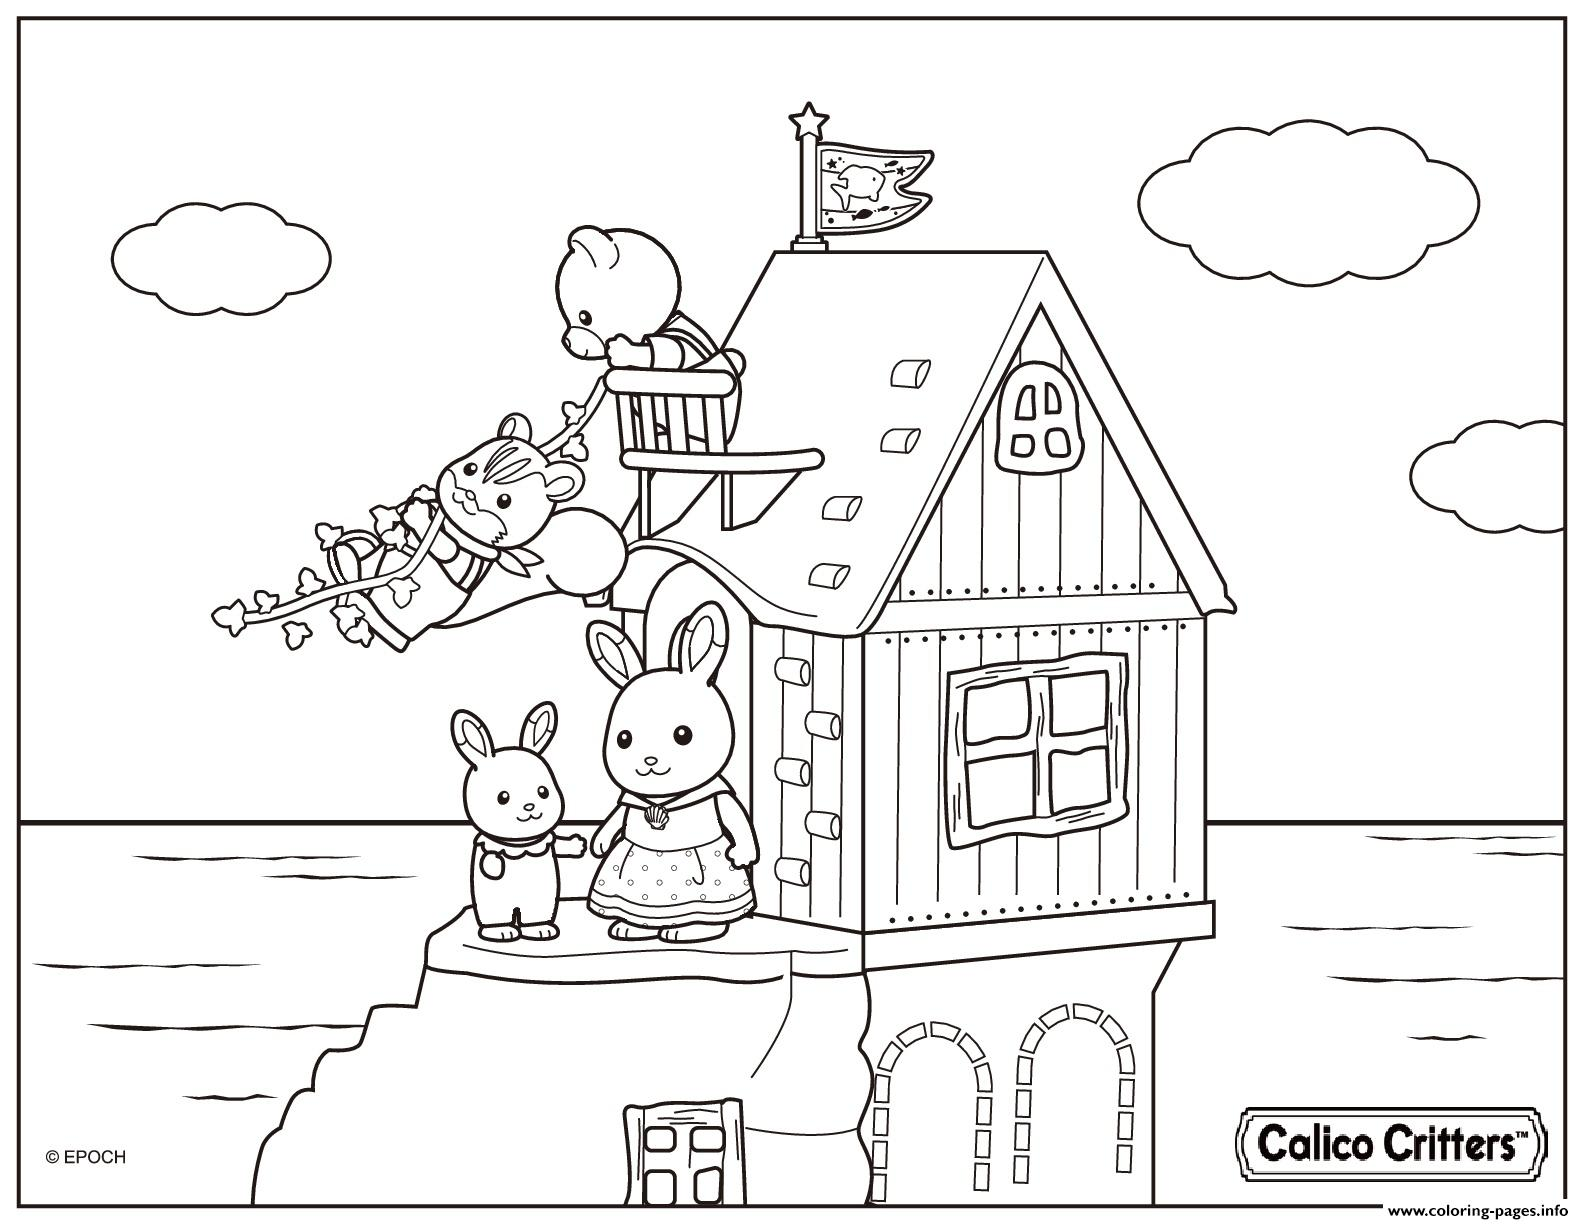 Calico critters house beach coloring pages printable